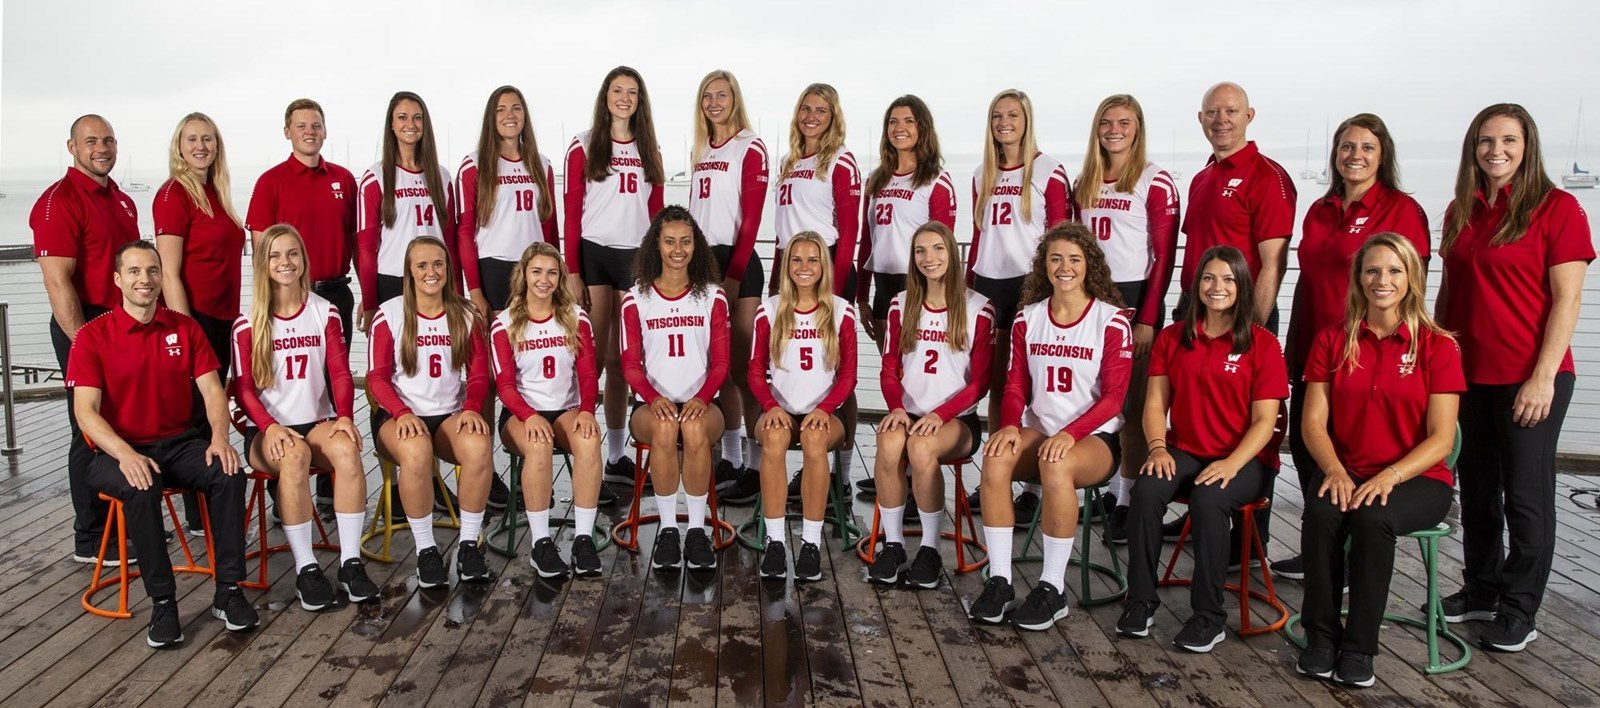 2018 Volleyball Roster Wisconsin Badgers